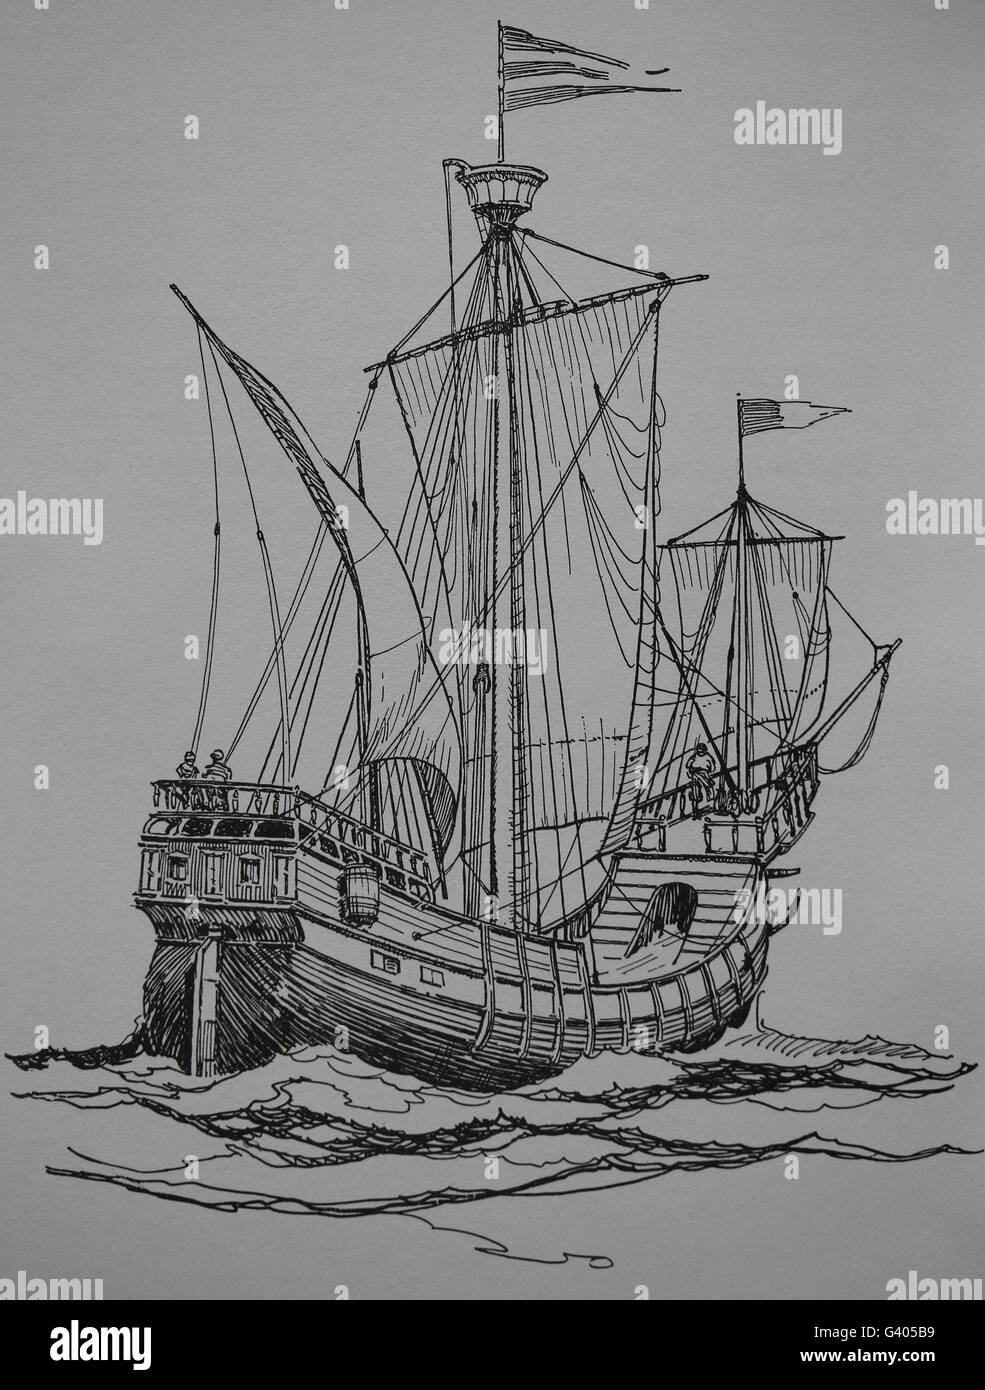 Modern Age. Late 16th century ship. Engraving, 19th century. - Stock Image